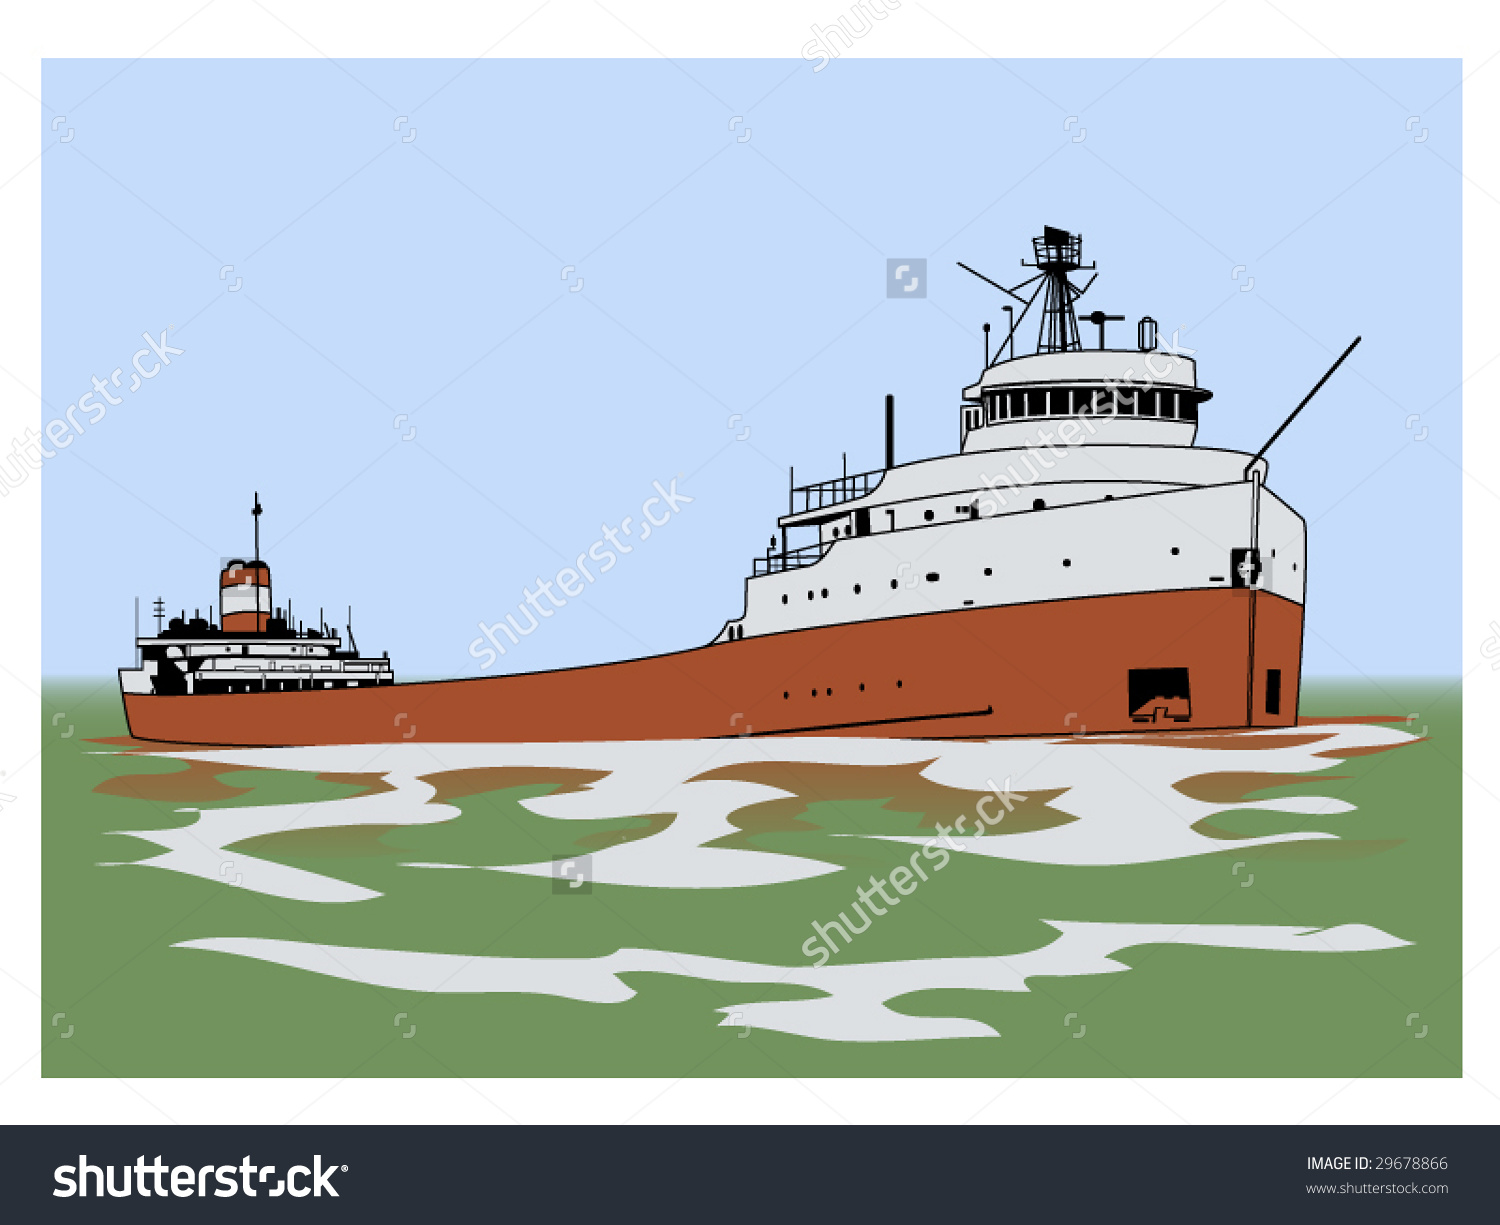 Vector Illustration Of A Lake Freighter.